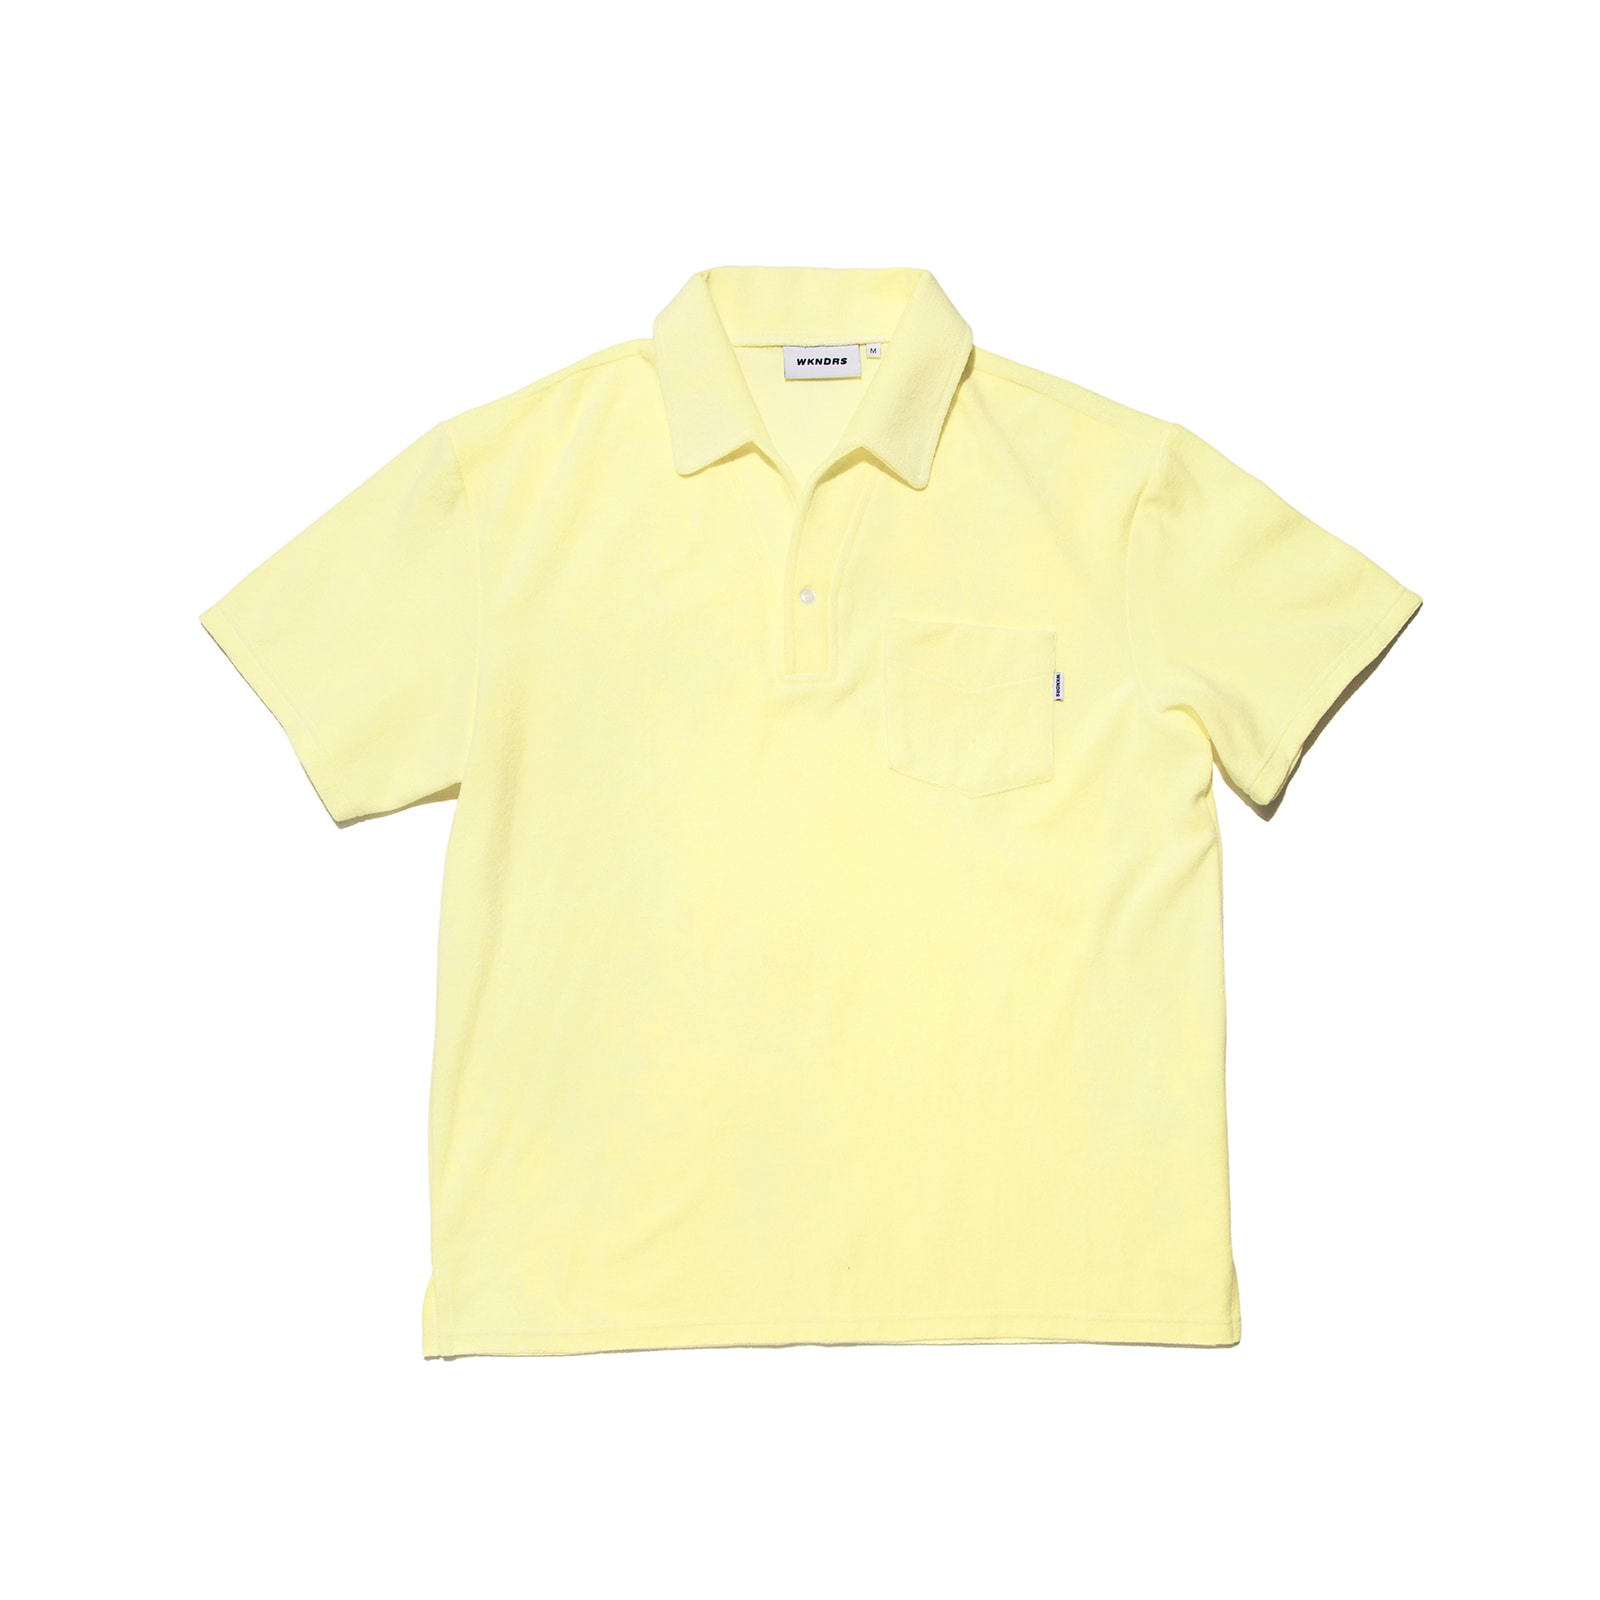 TOWEL COLLAR T-SHIRTS (L.YELLOW)